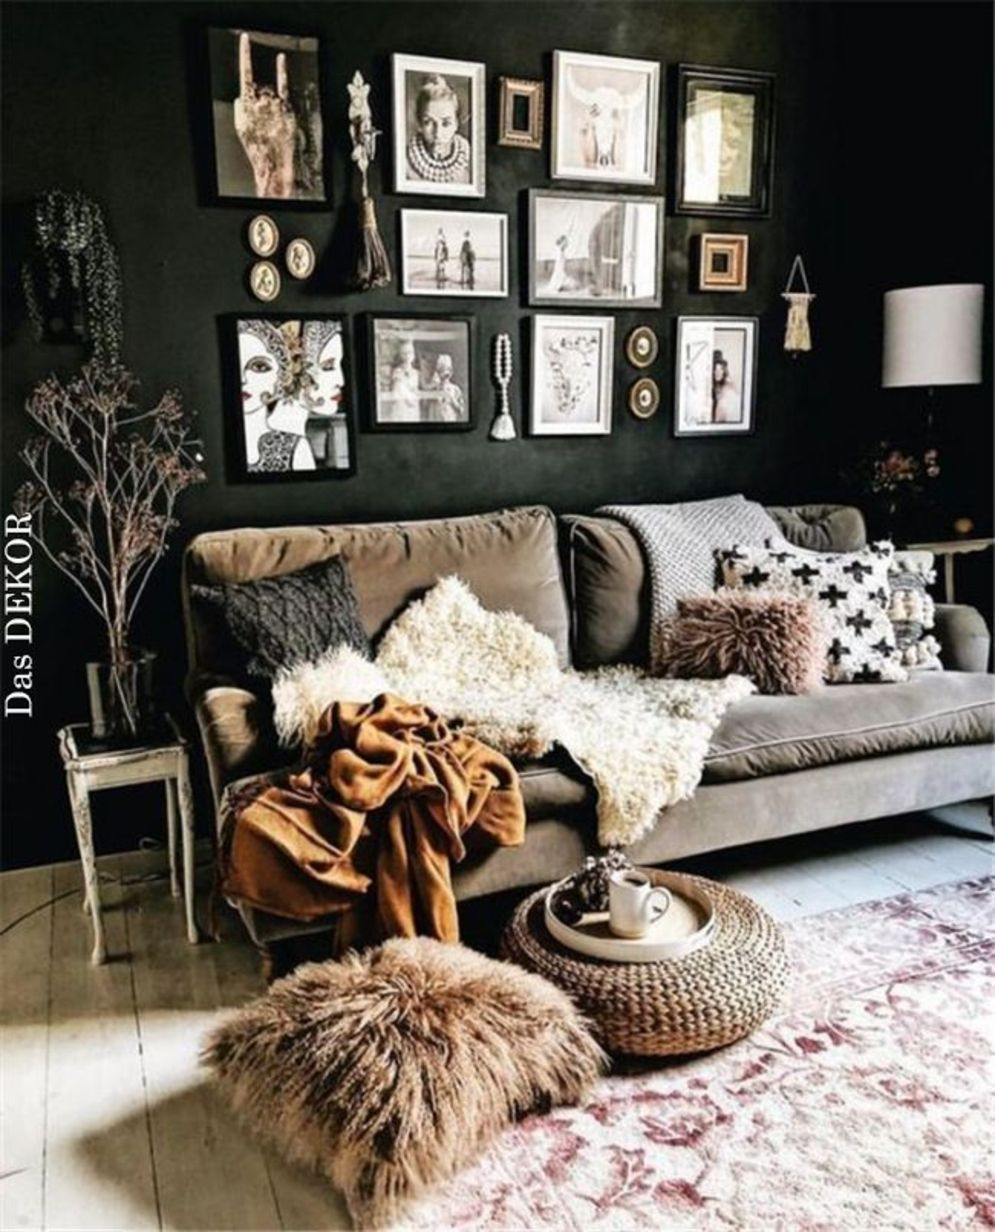 Expressive interior display in multilayering textures and colors showing artsy interior schemes with retro and vintage accents Image 6